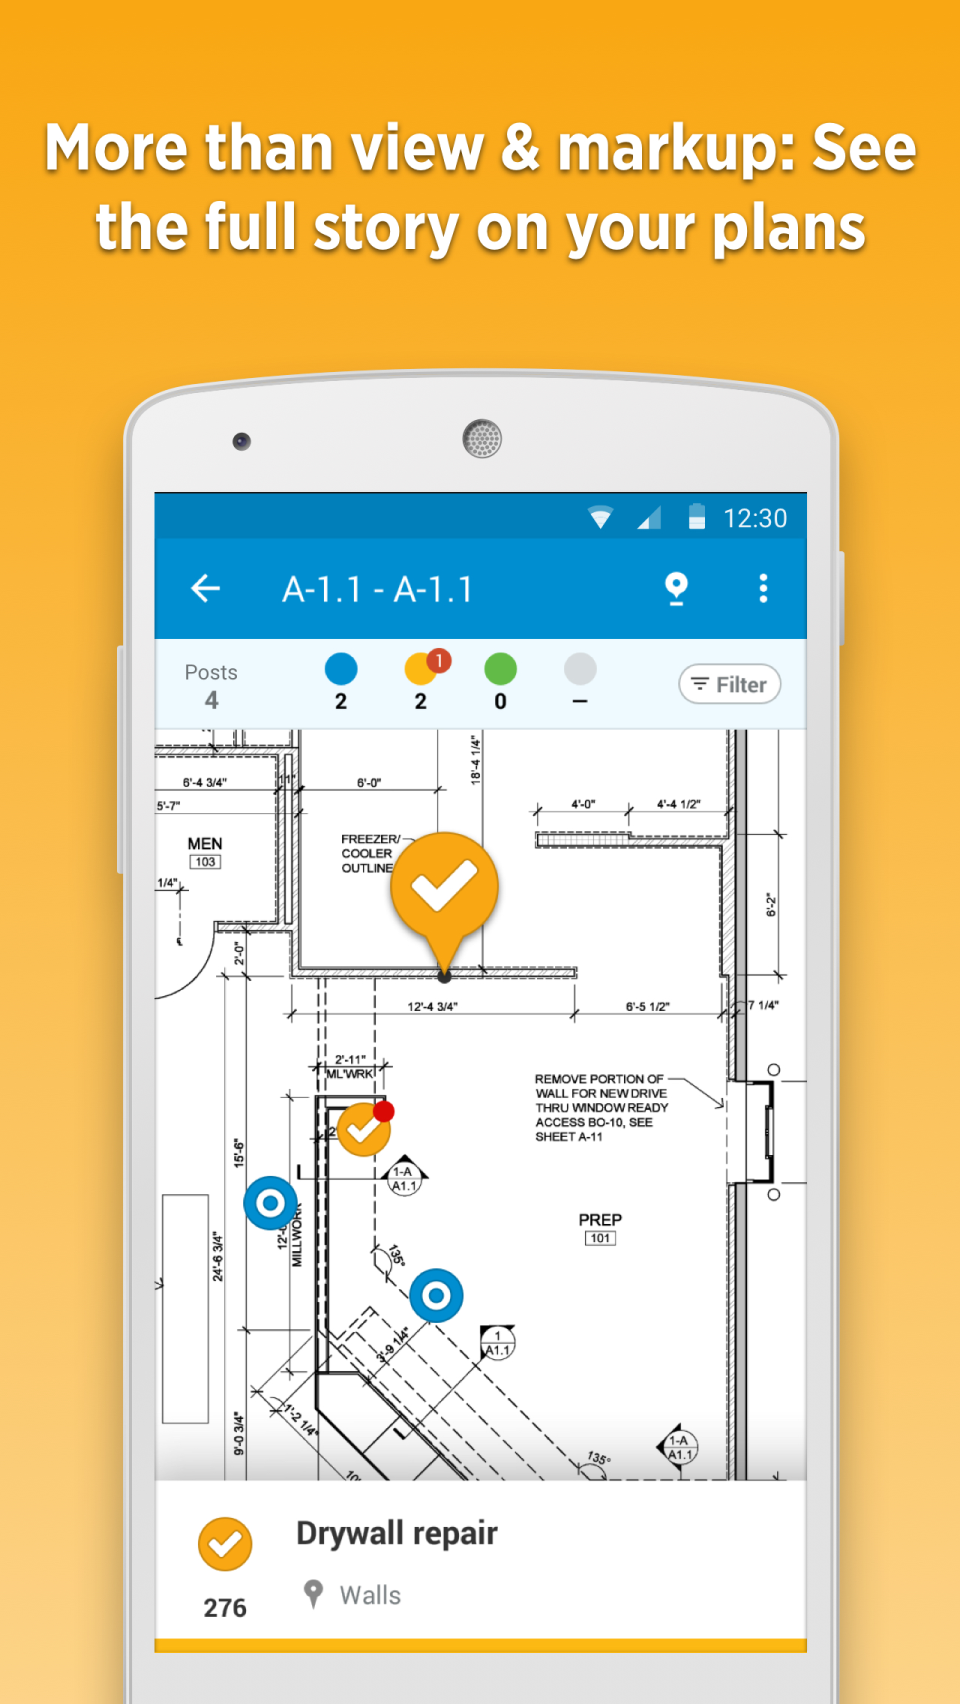 Construction plan display on mobile app